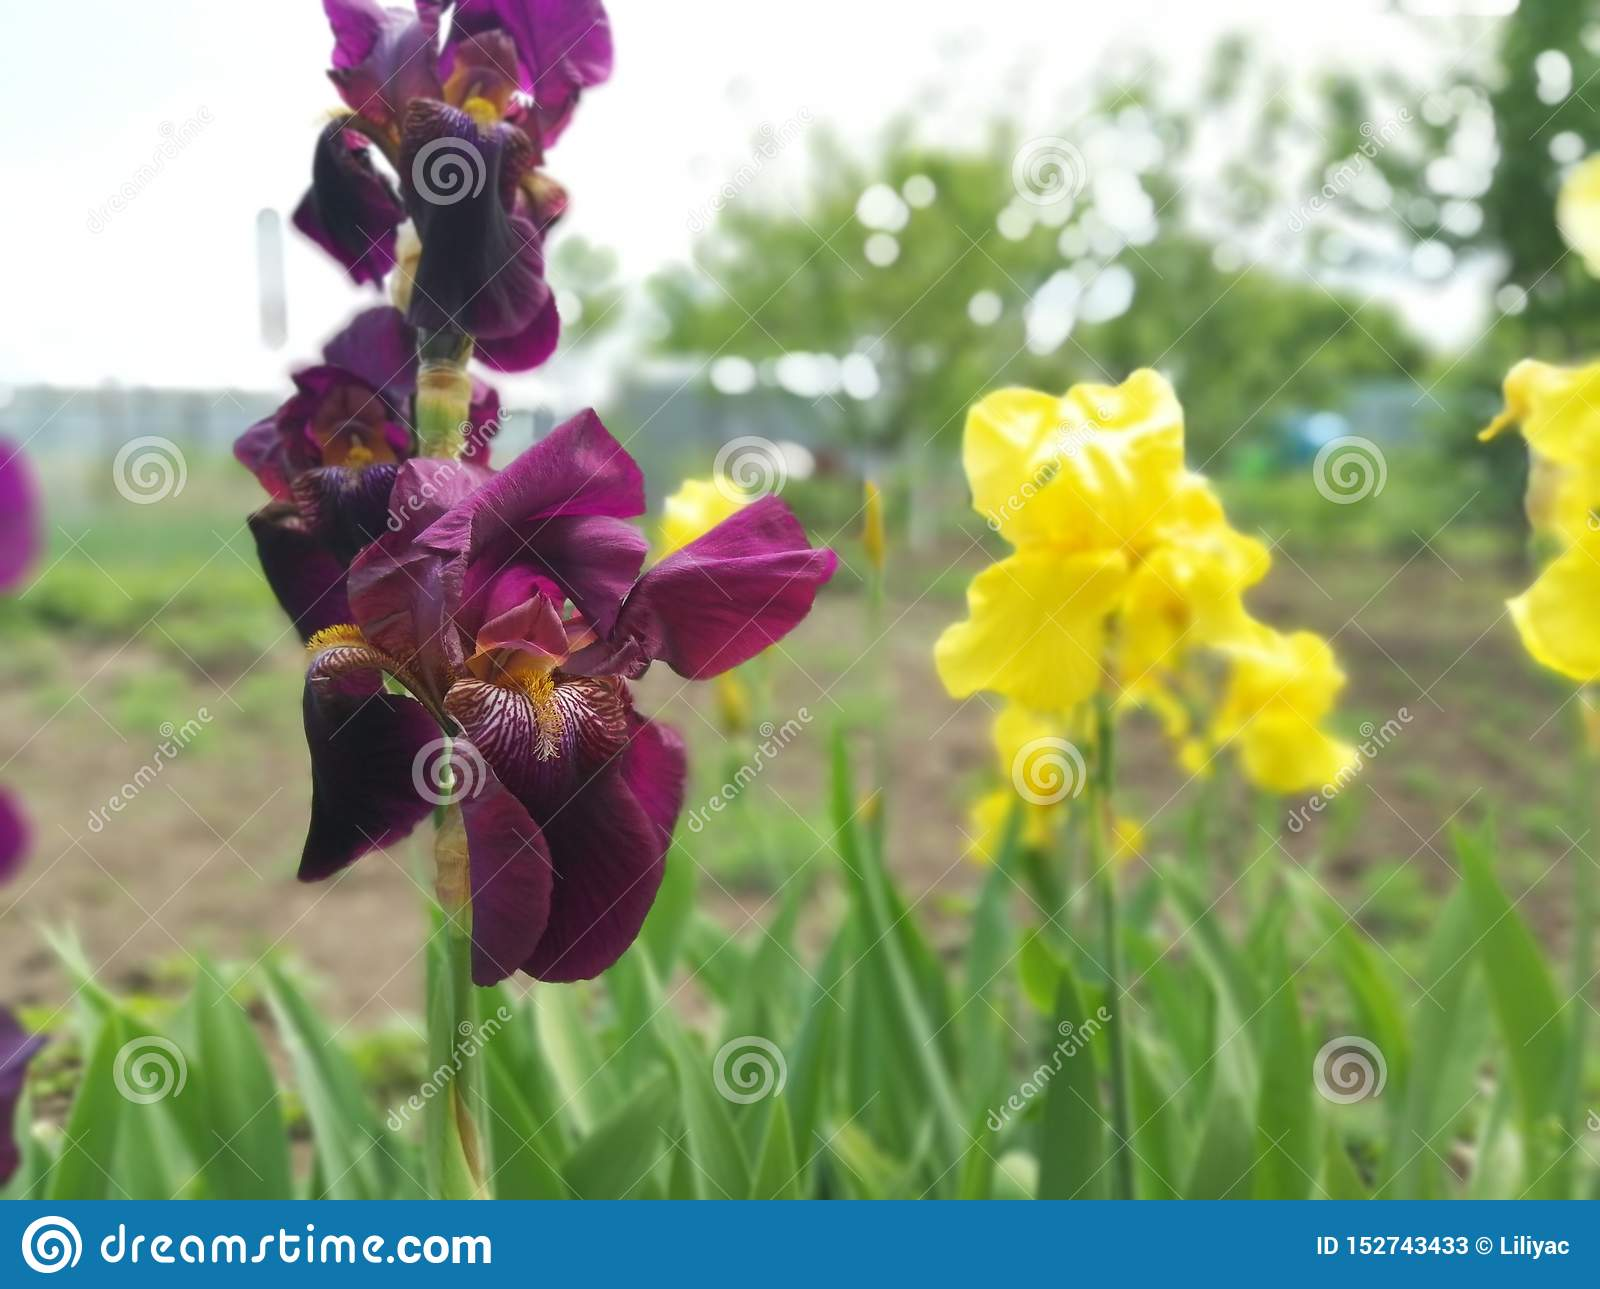 Burgundy and yellow irises in a flower bed